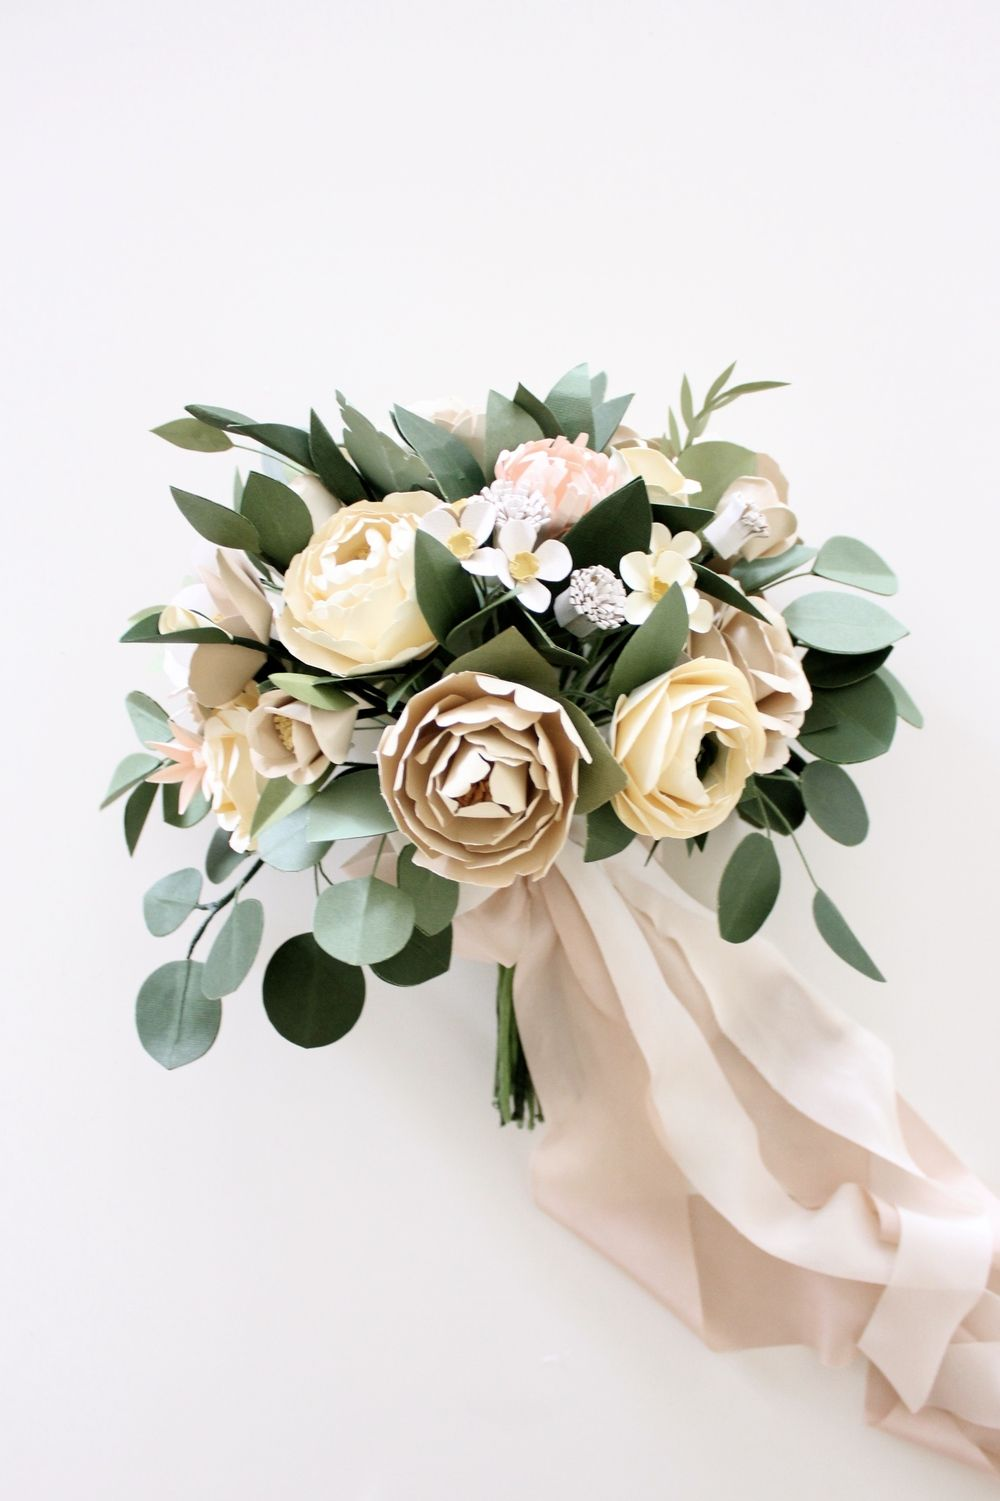 Flowers from paper with our own hands - create an eternal bouquet